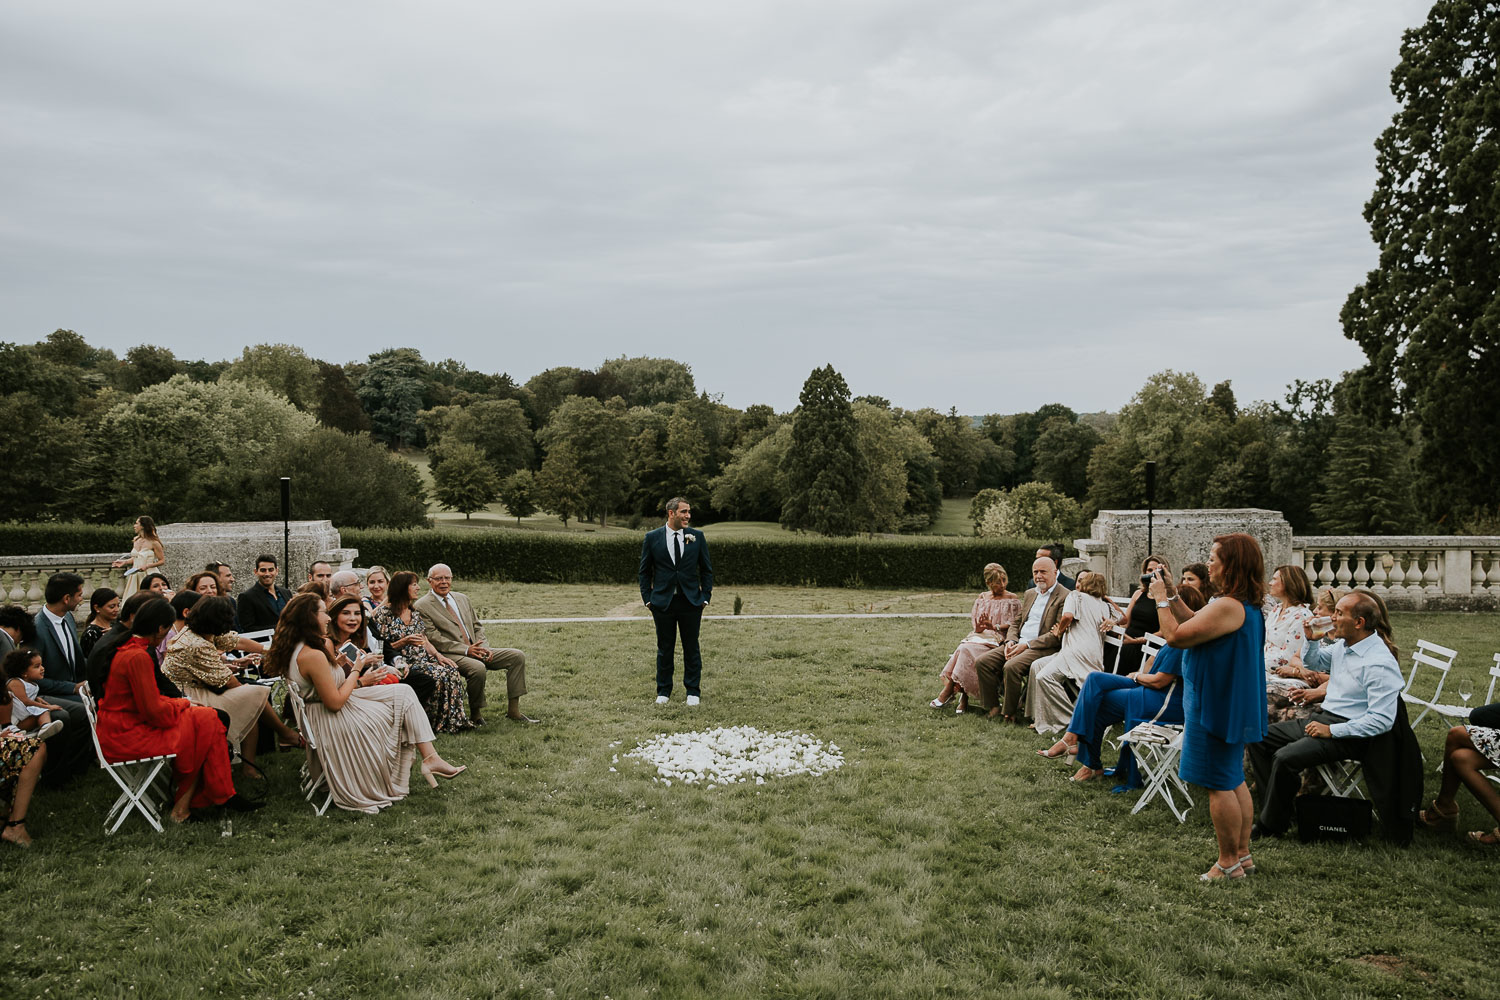 chateau-bouffemont-outdoor-wedding-106